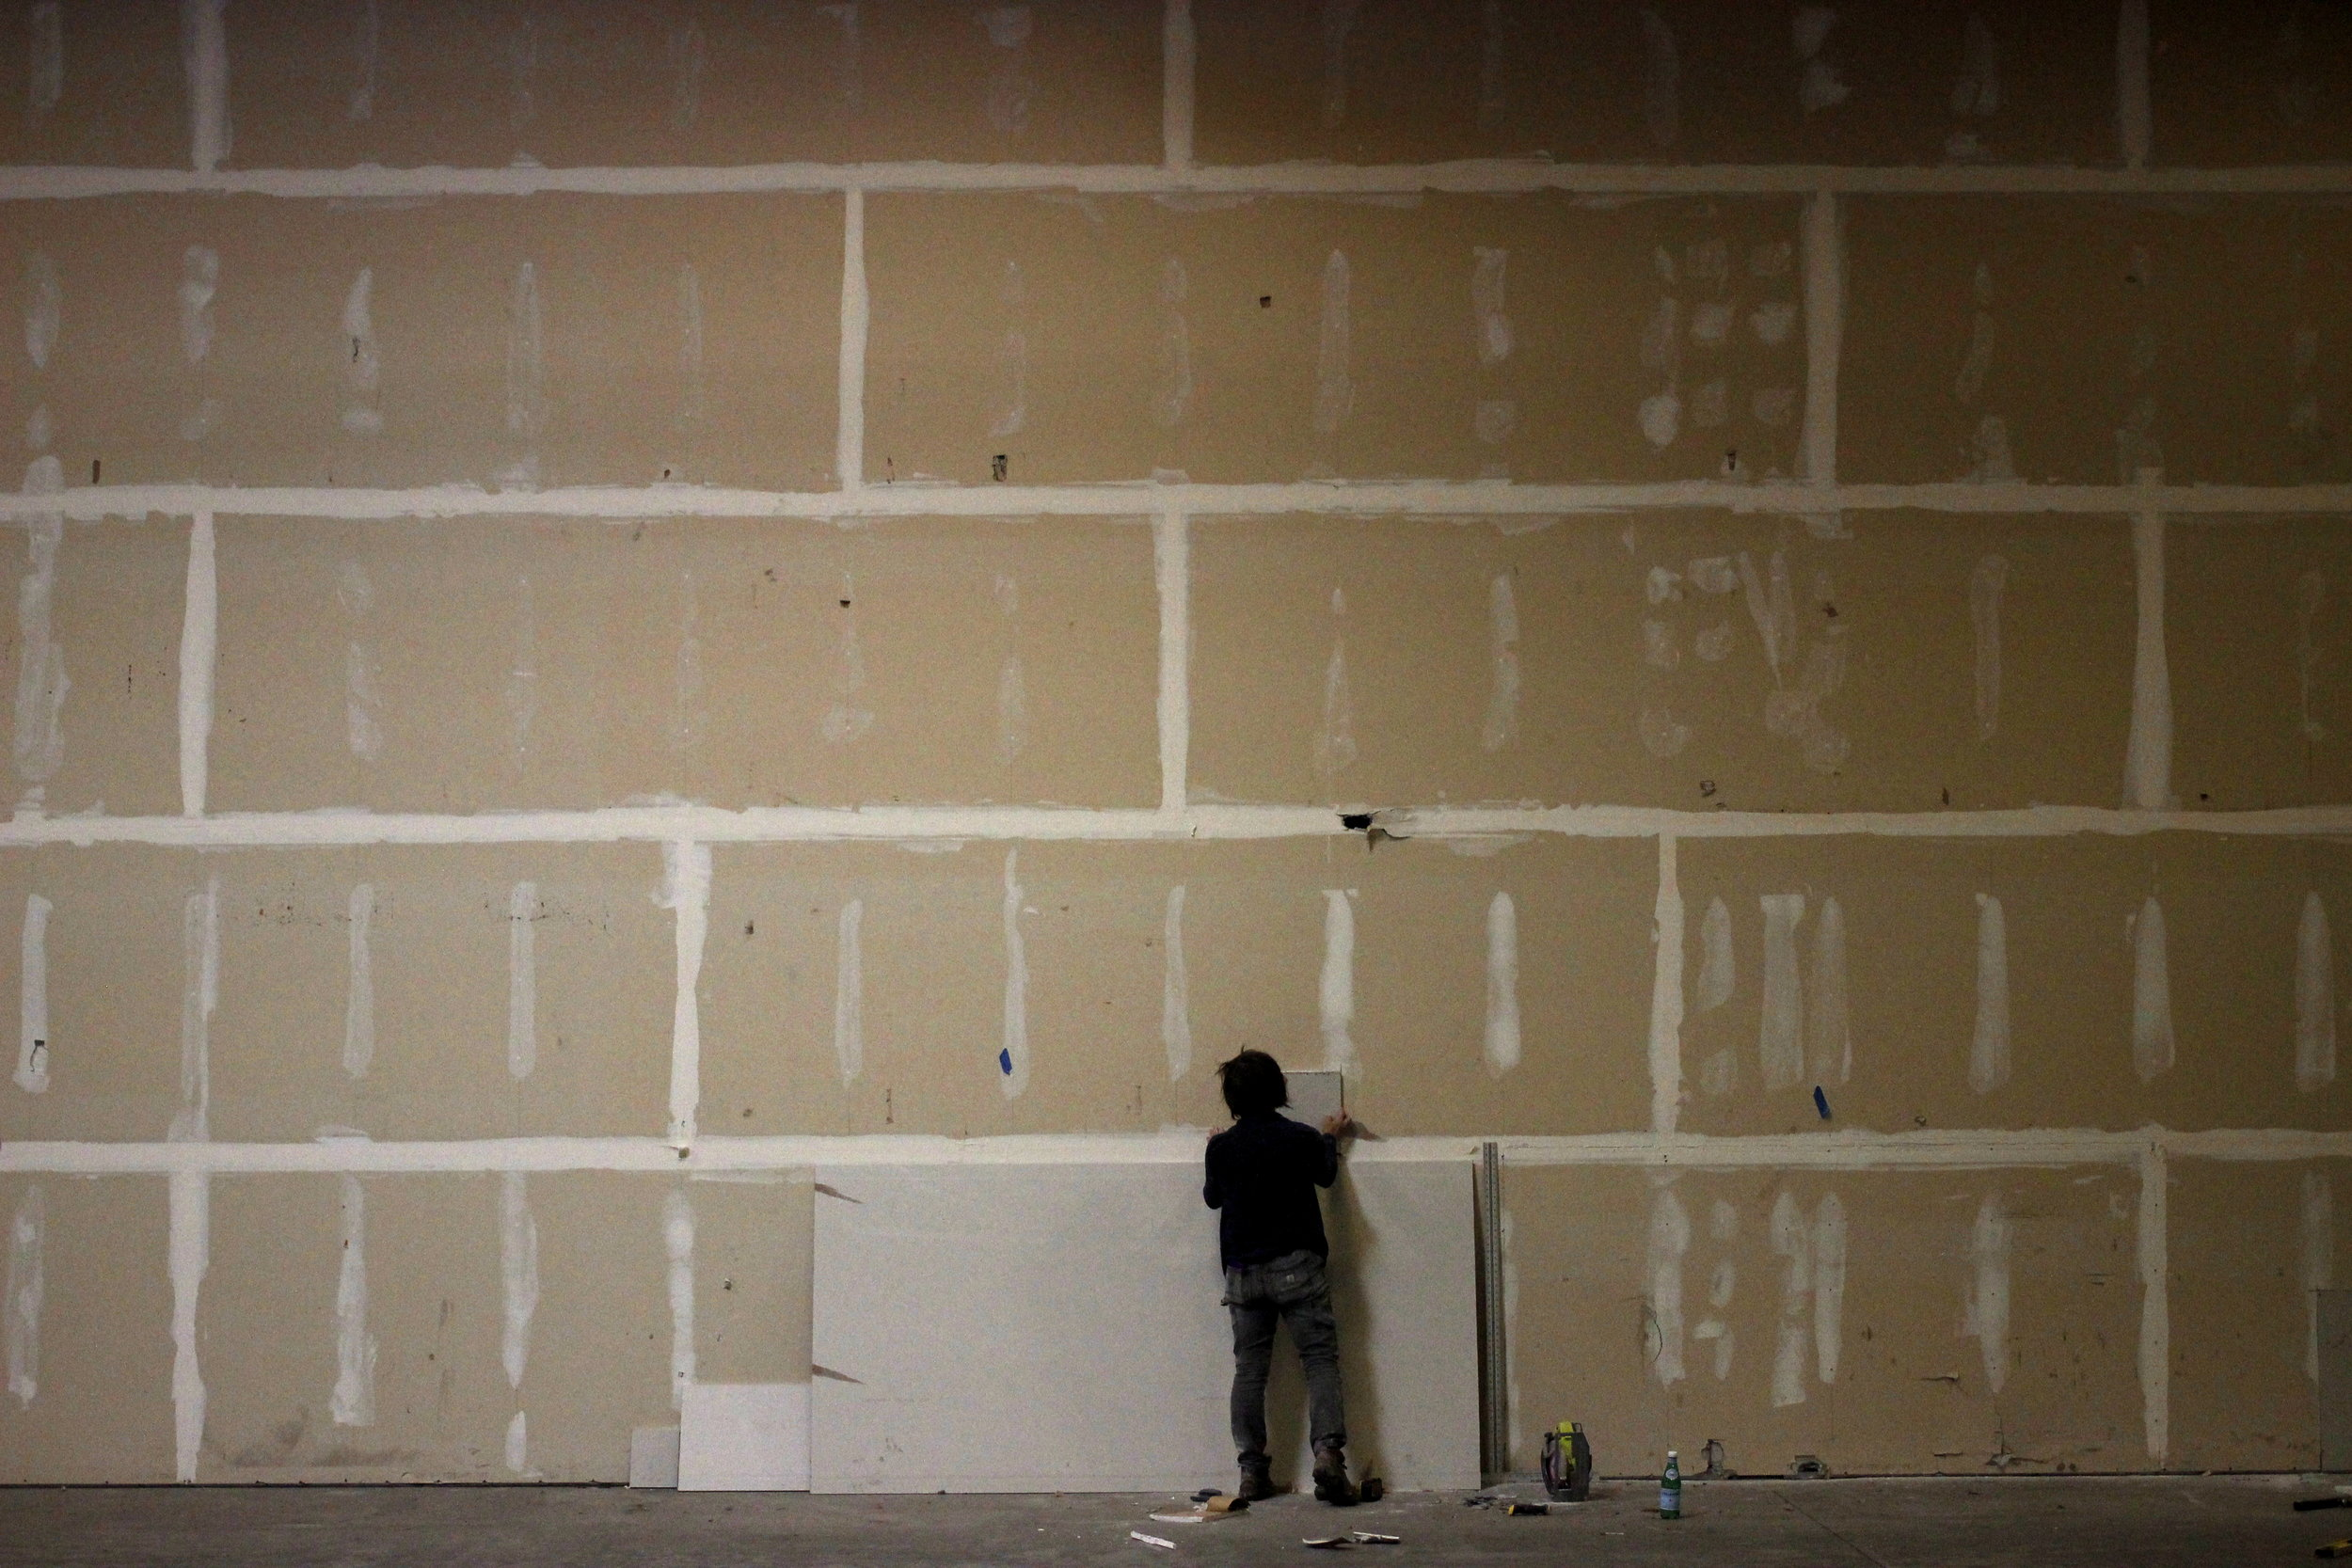 Repairing damaged drywall in a giant warehouse.